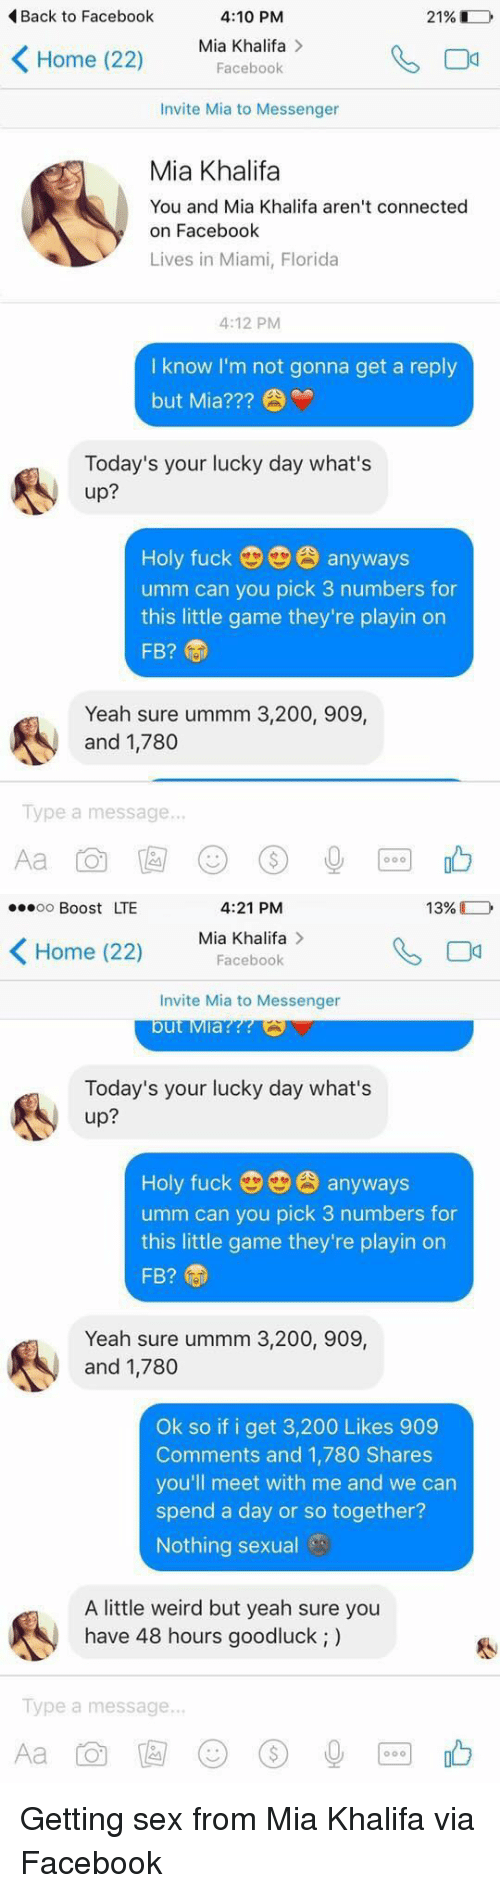 Chat With Mia Khalifa